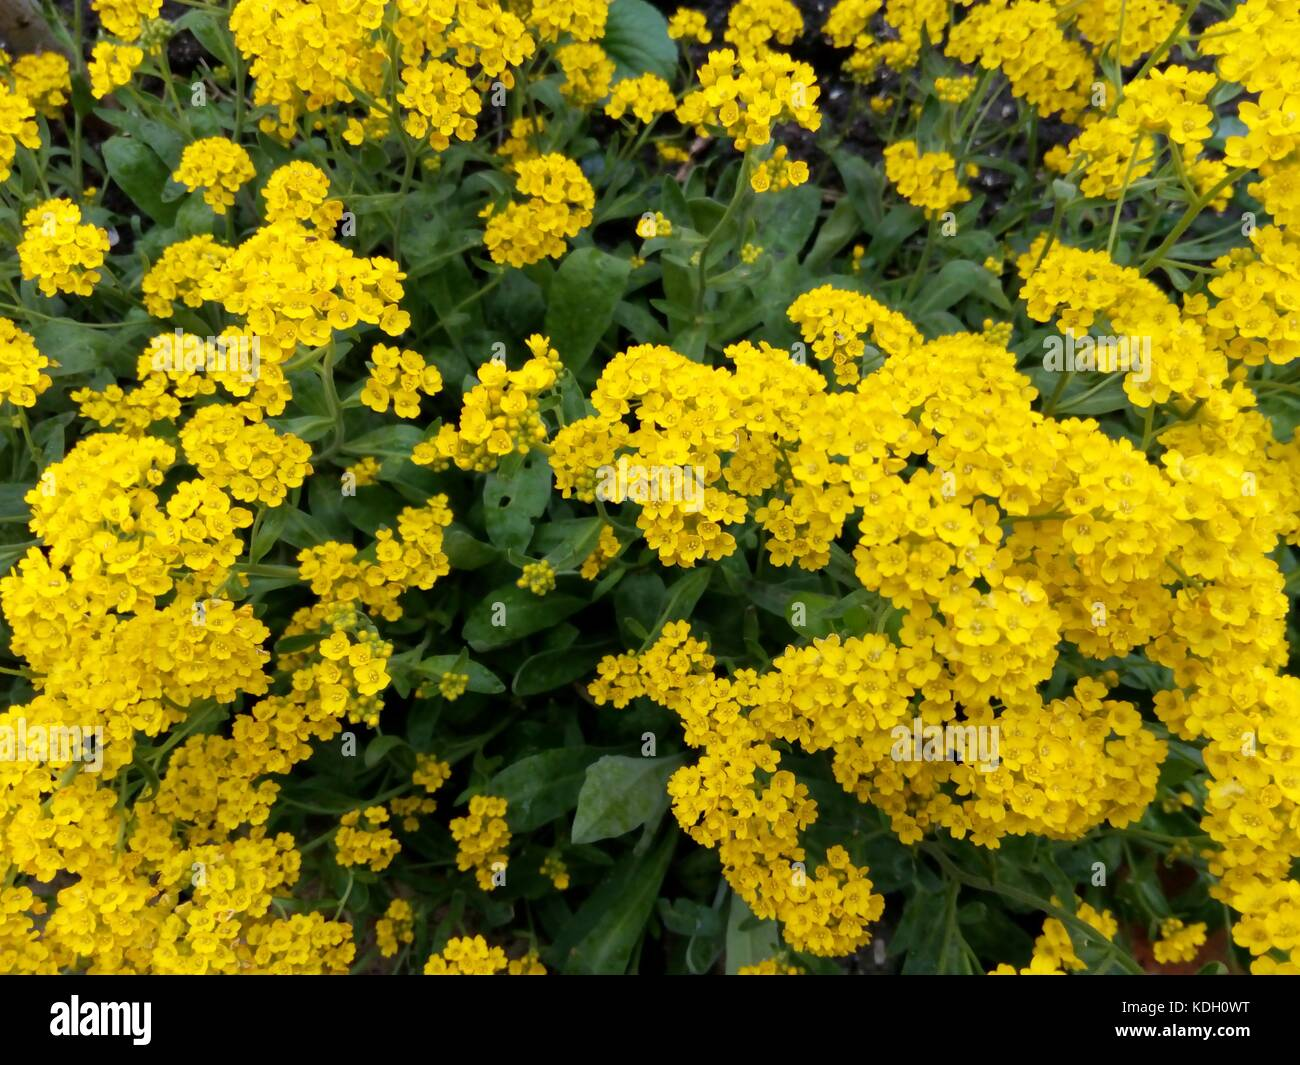 Spring Bush Studded With Small Yellow Flowers Among Green Leaves